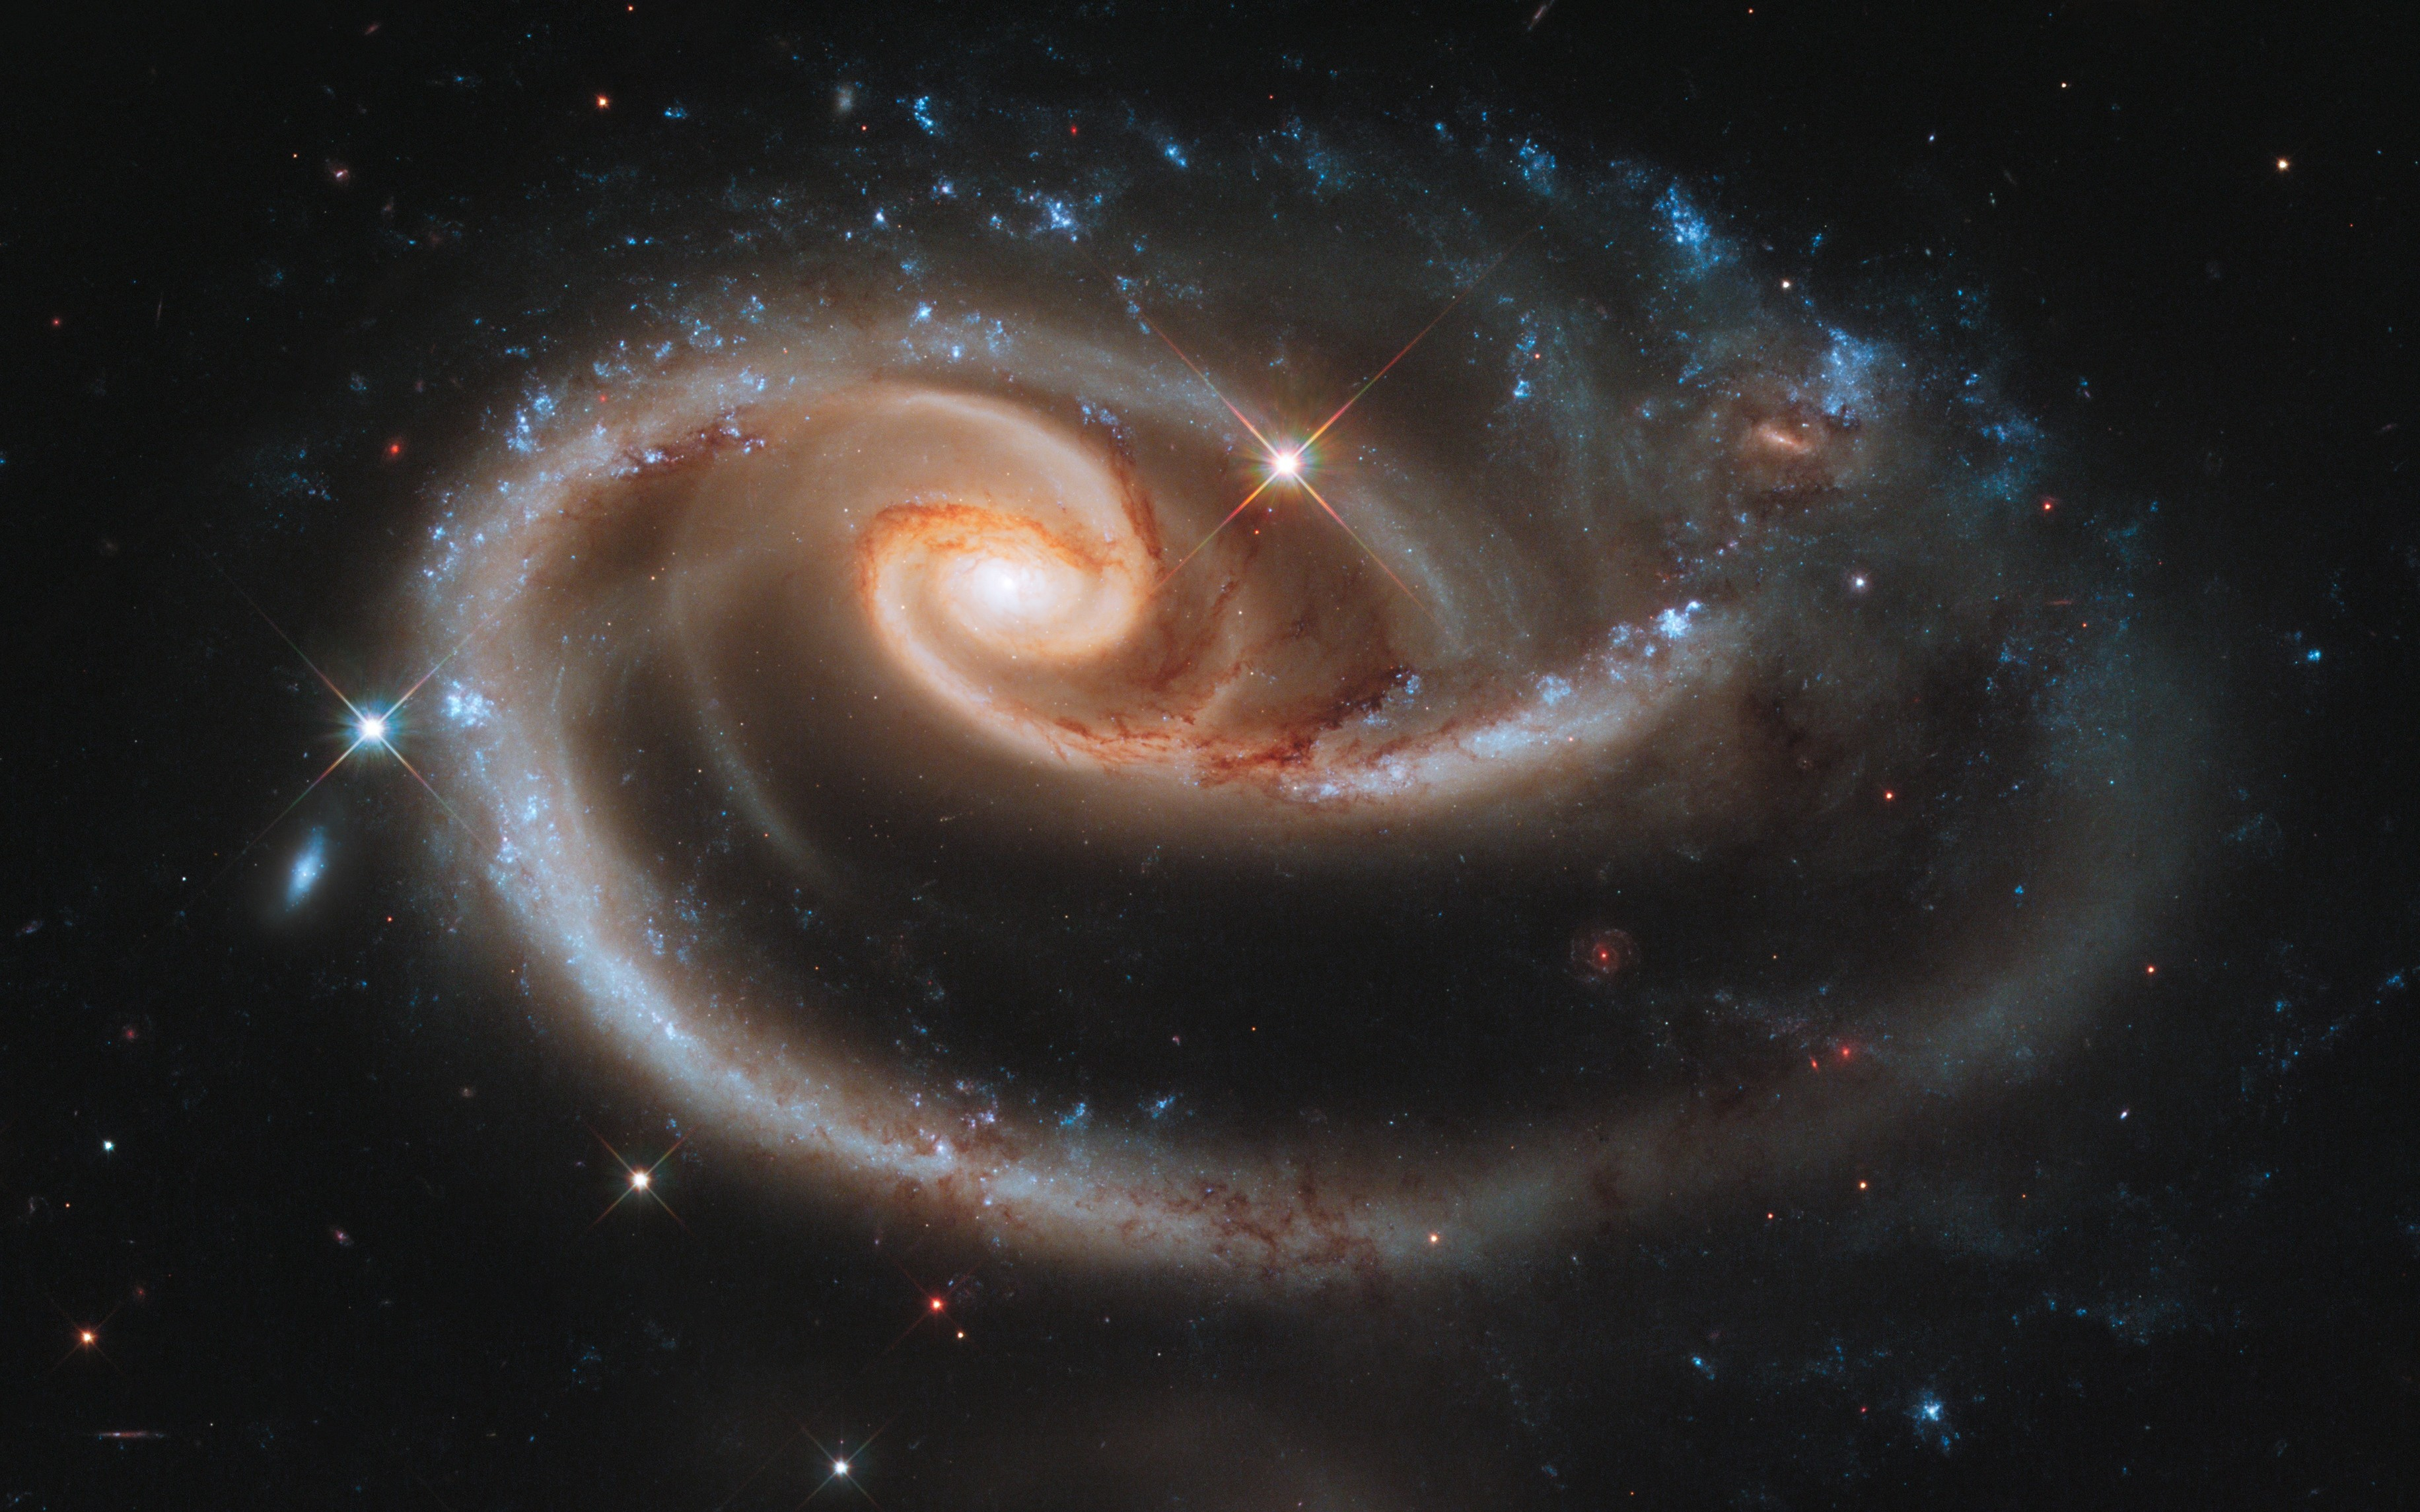 Hubble image   Le Fancy Wallpapers   Mod DB 3664x2290